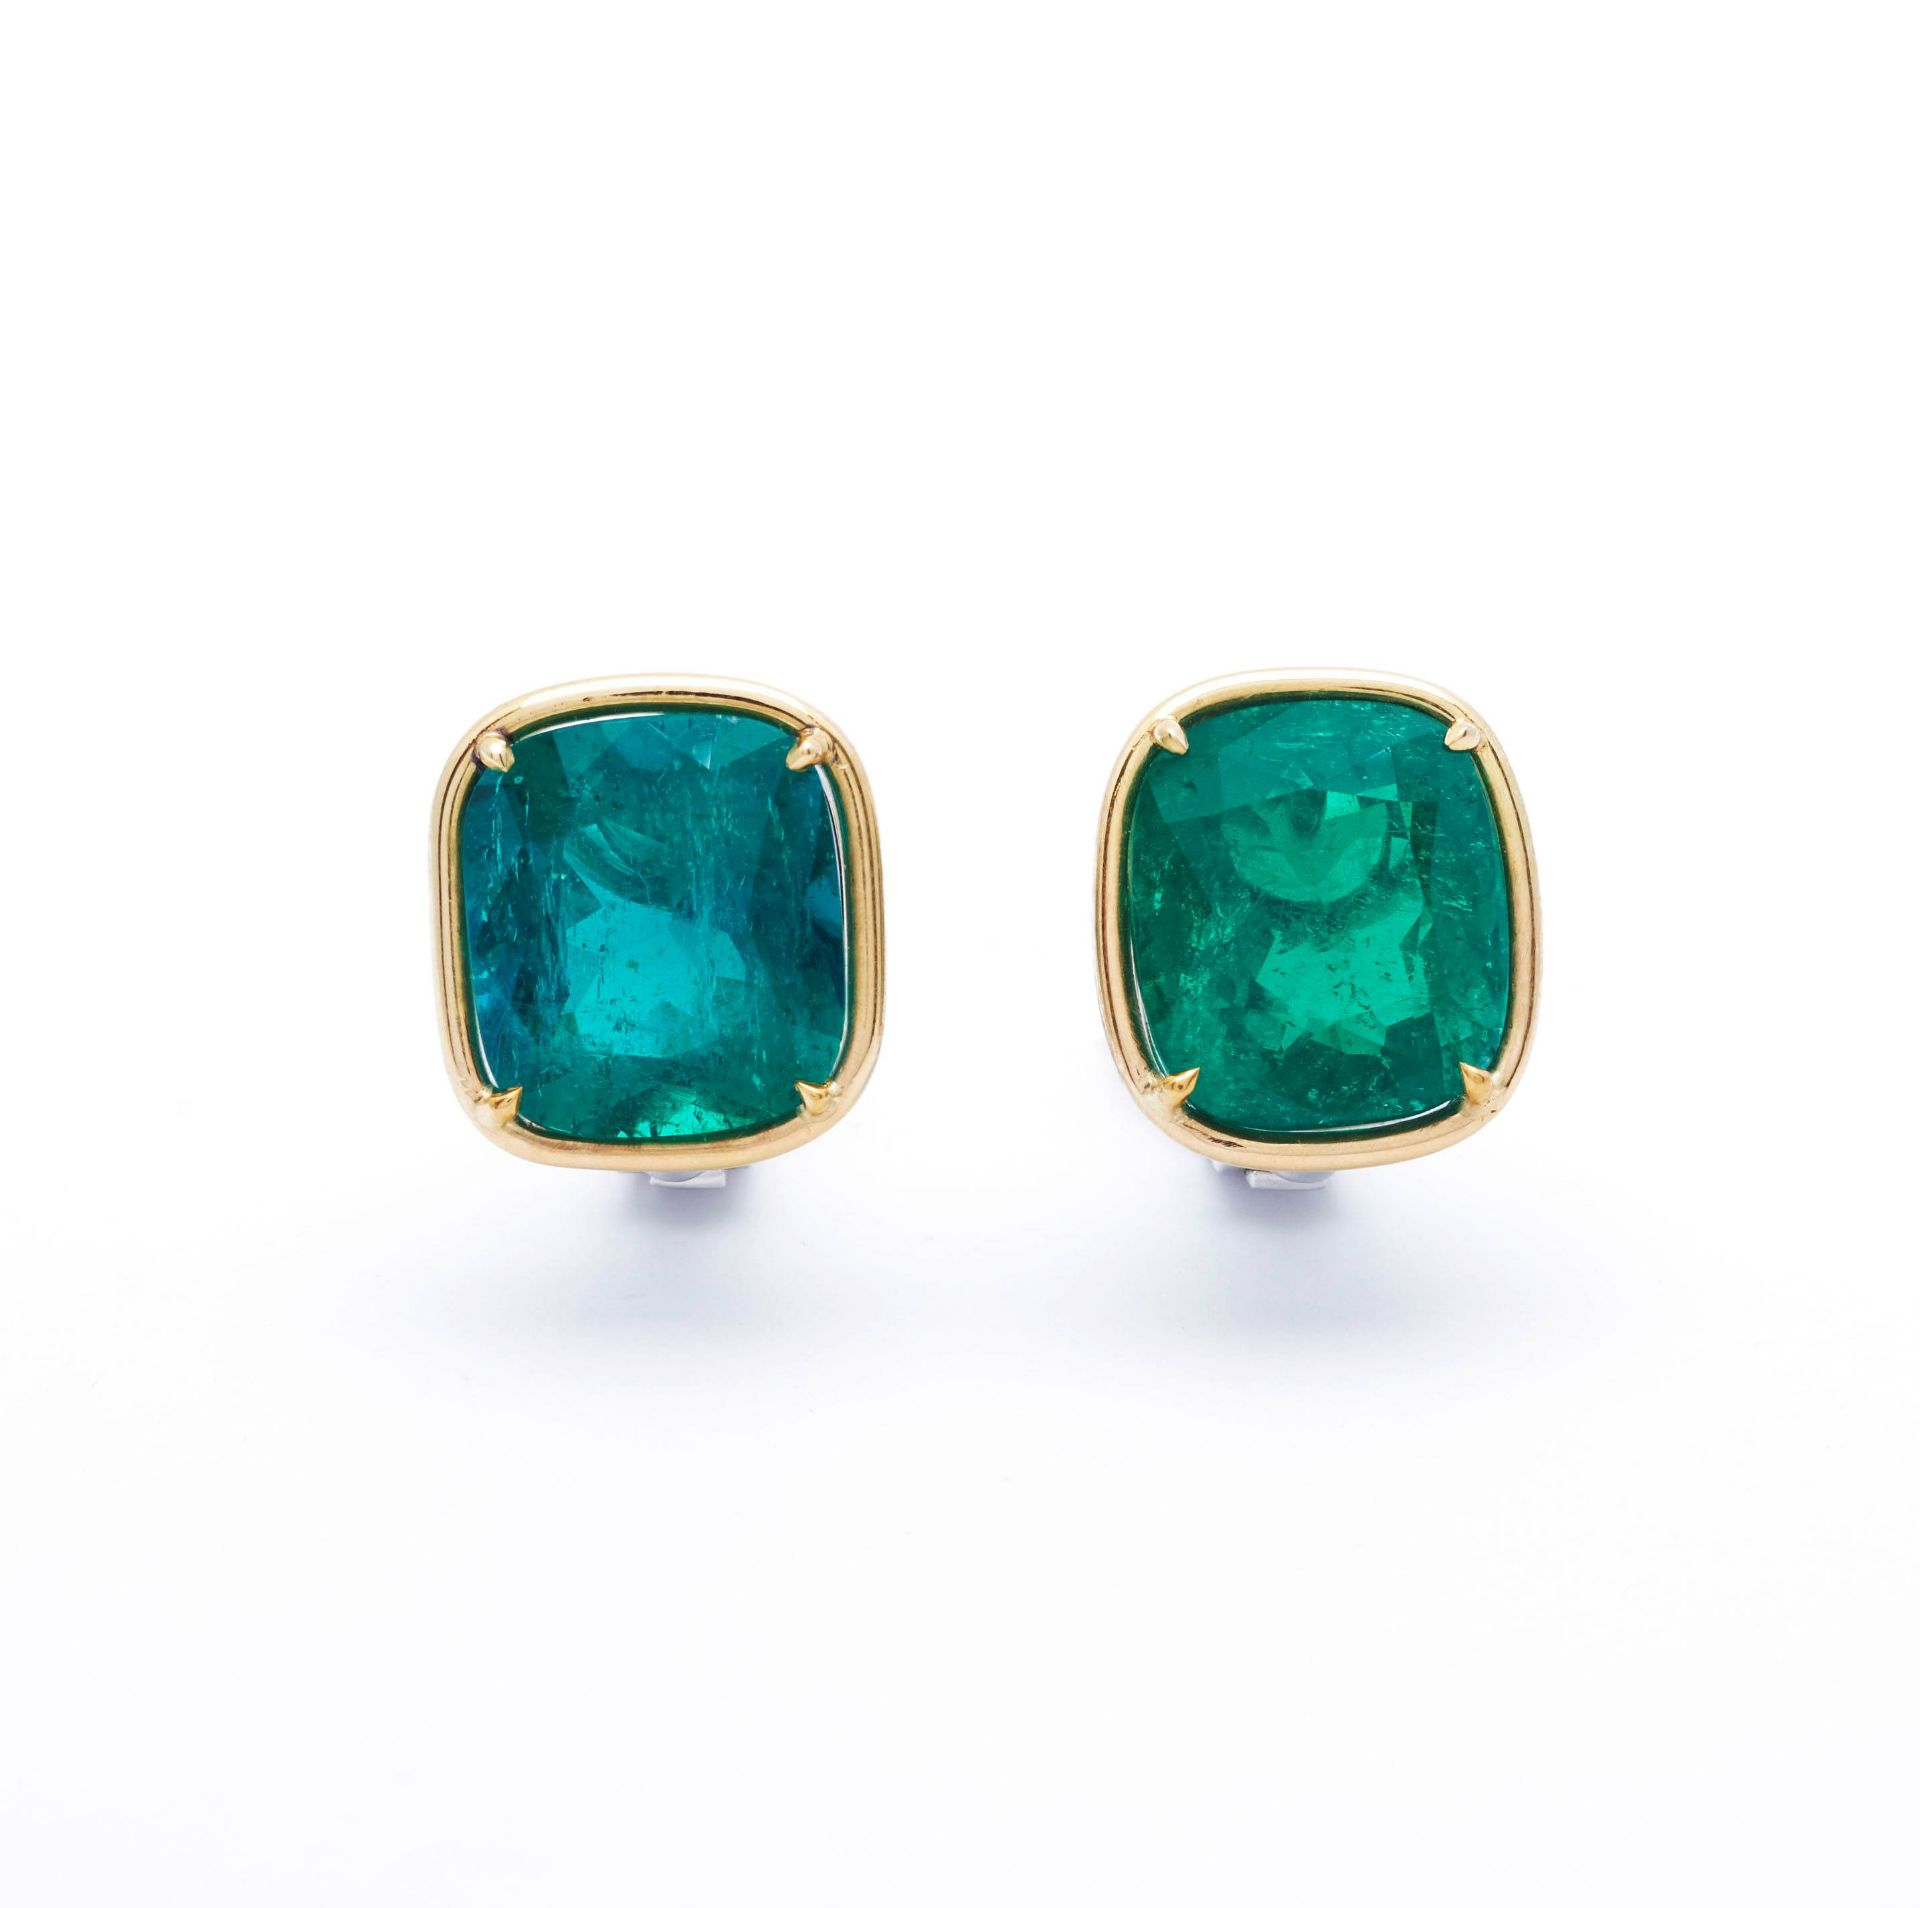 EMERALD AND GOLD EARCLIPS. - Image 7 of 7